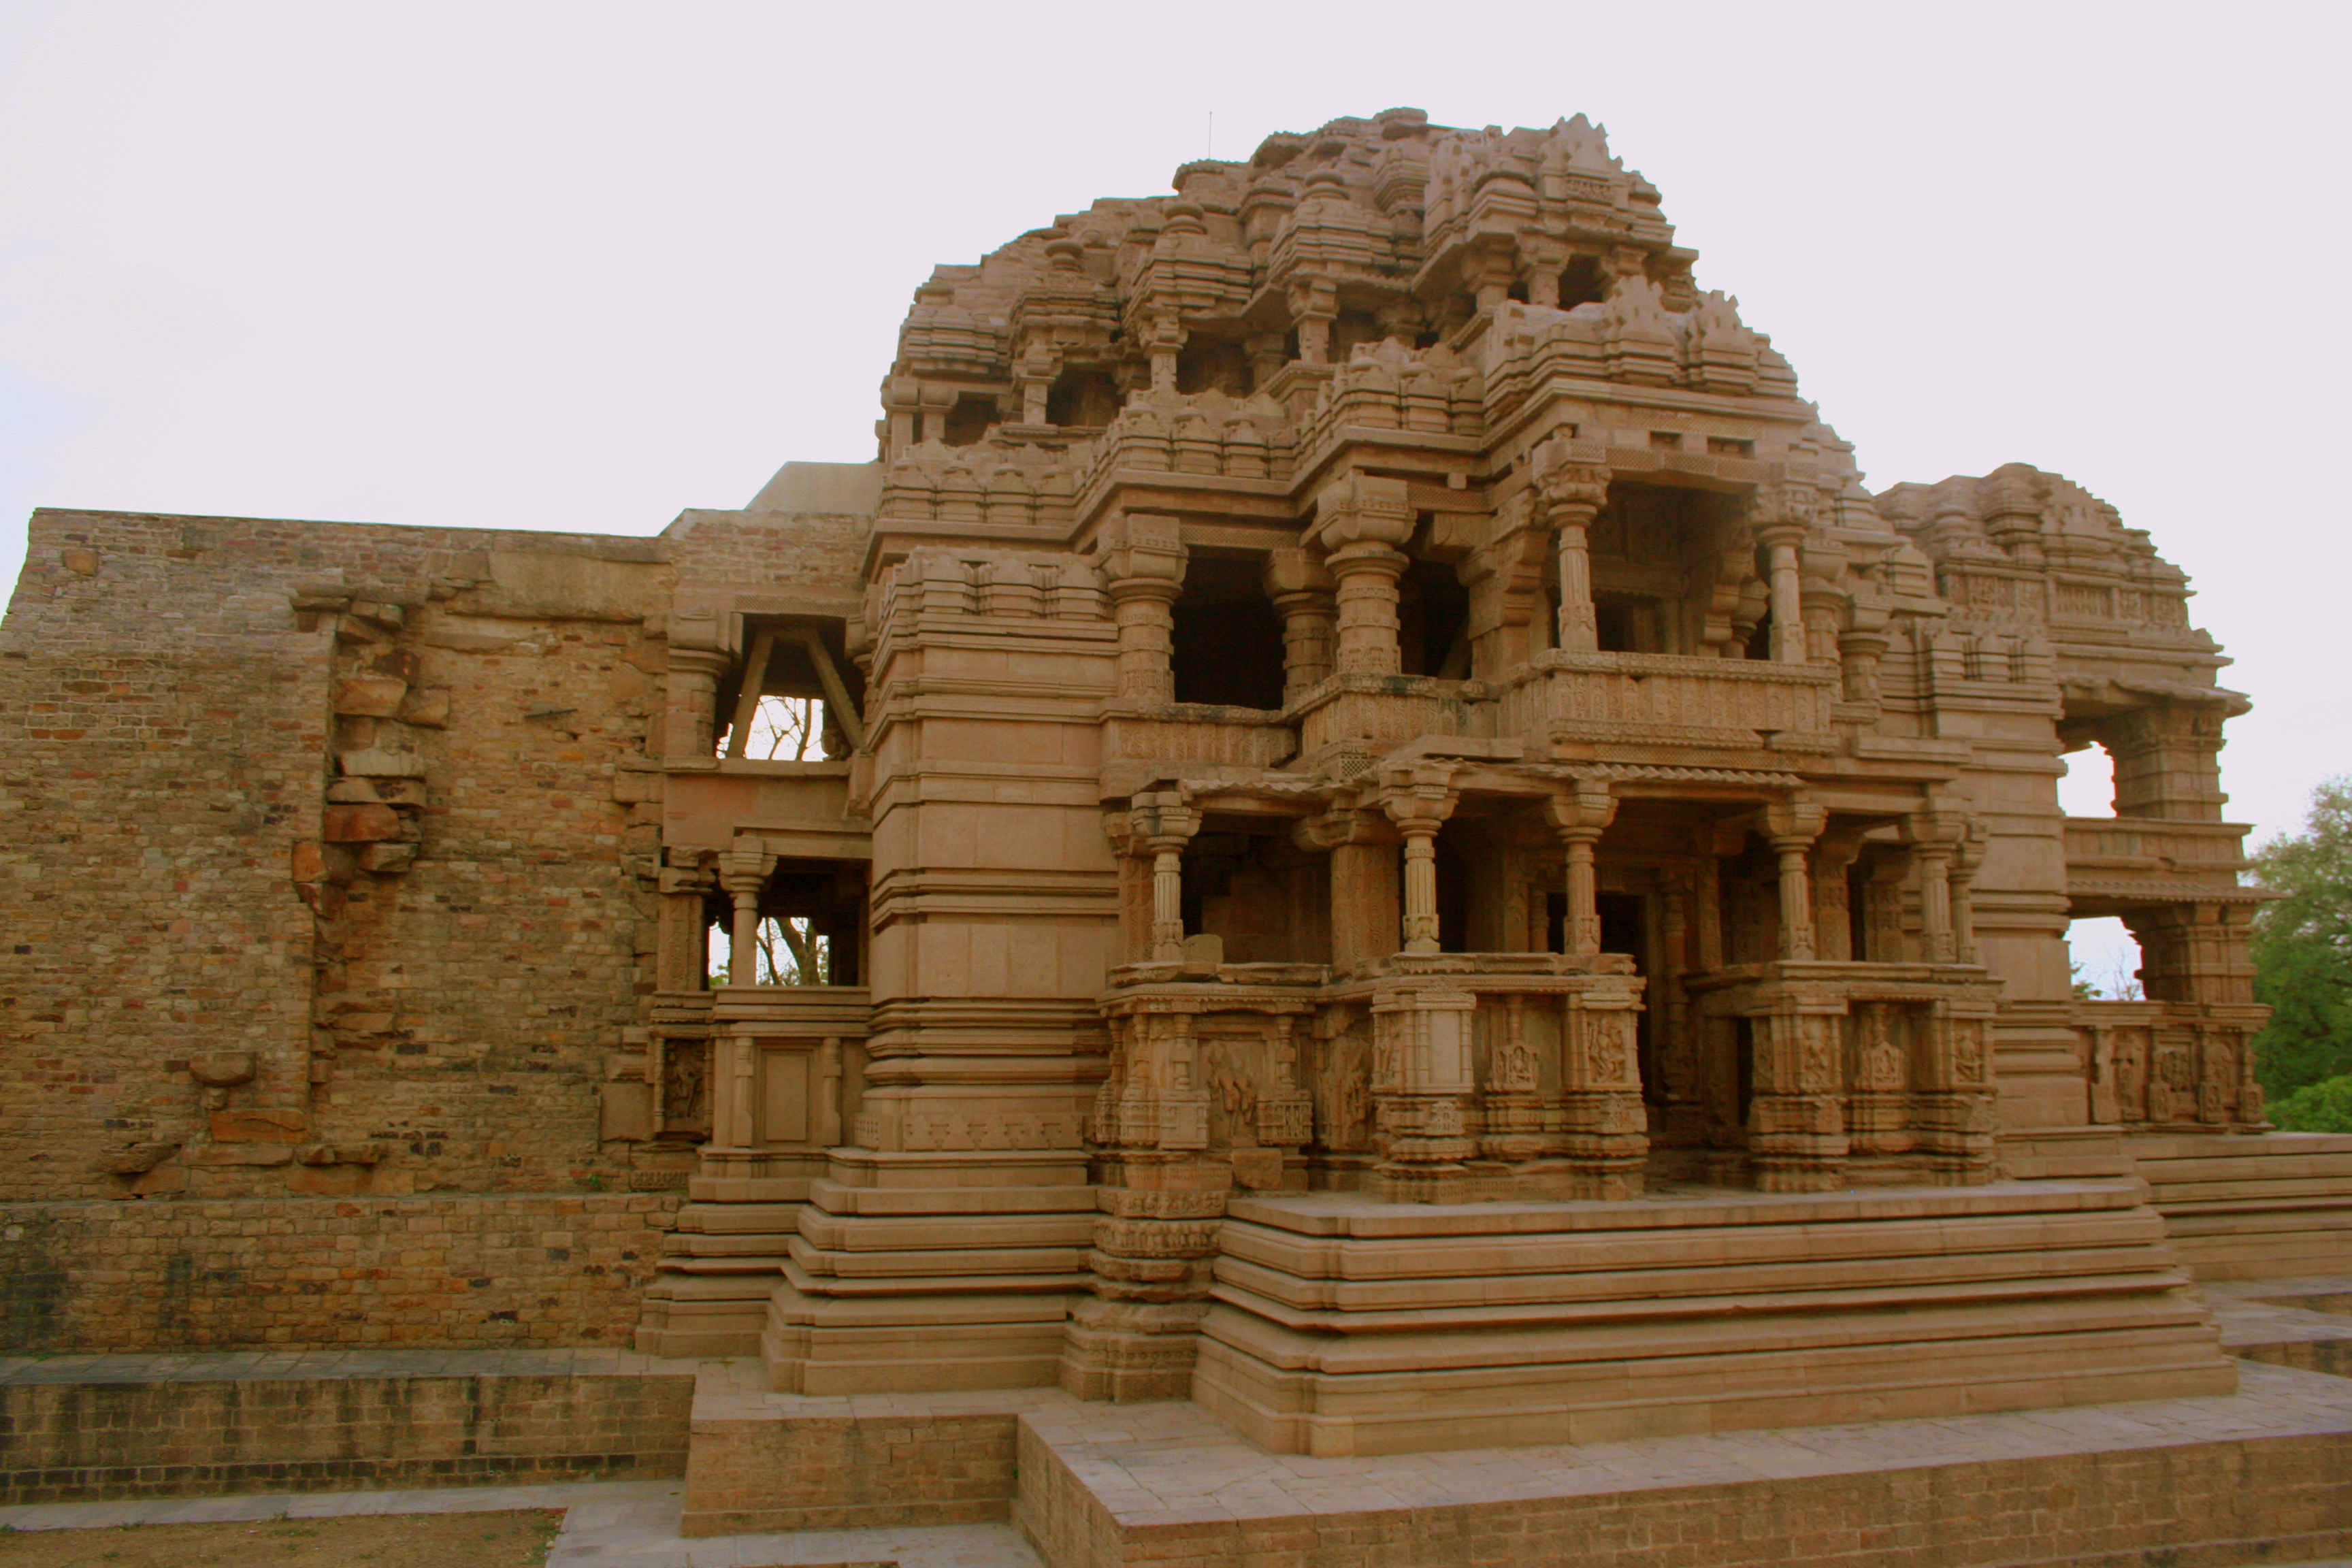 rajput architecture the mewar havelis Architecture this monument is an exemplary model of the rajput palace fortress and a masterpiece of medieval rajput architectural grandeur in india.